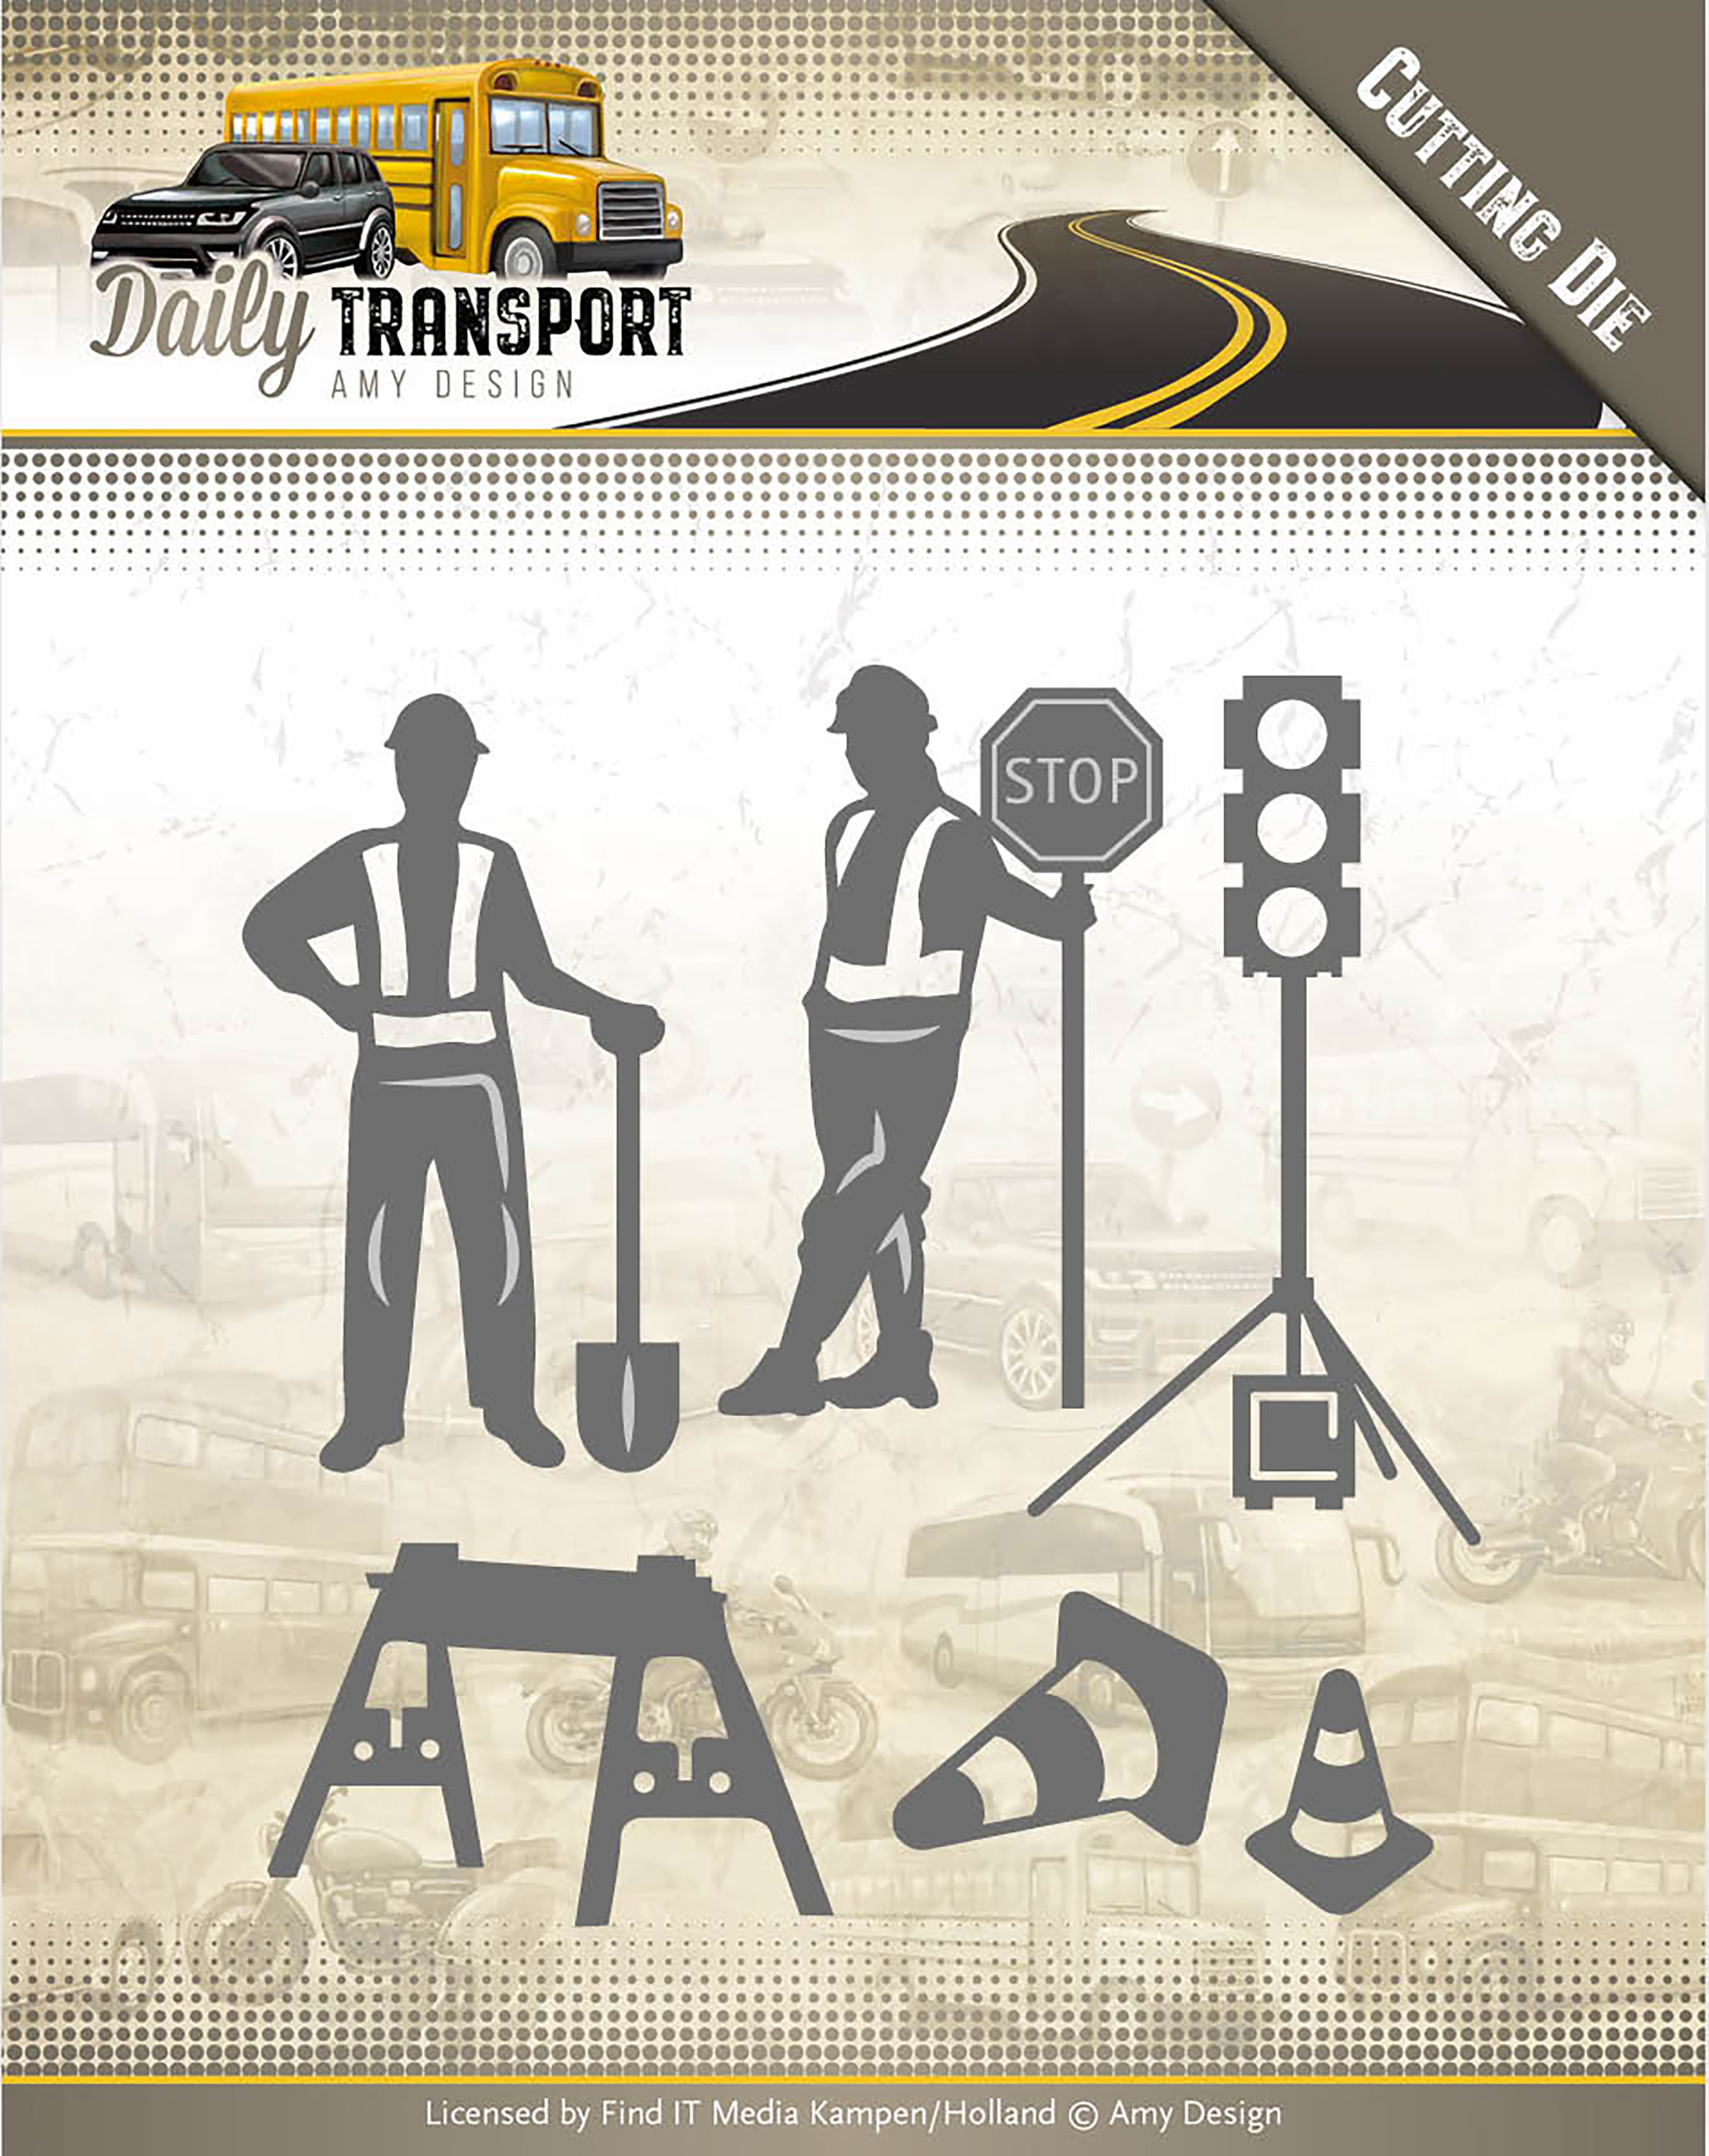 Road Construction - Find It Trading Amy Design Daily Transport Die